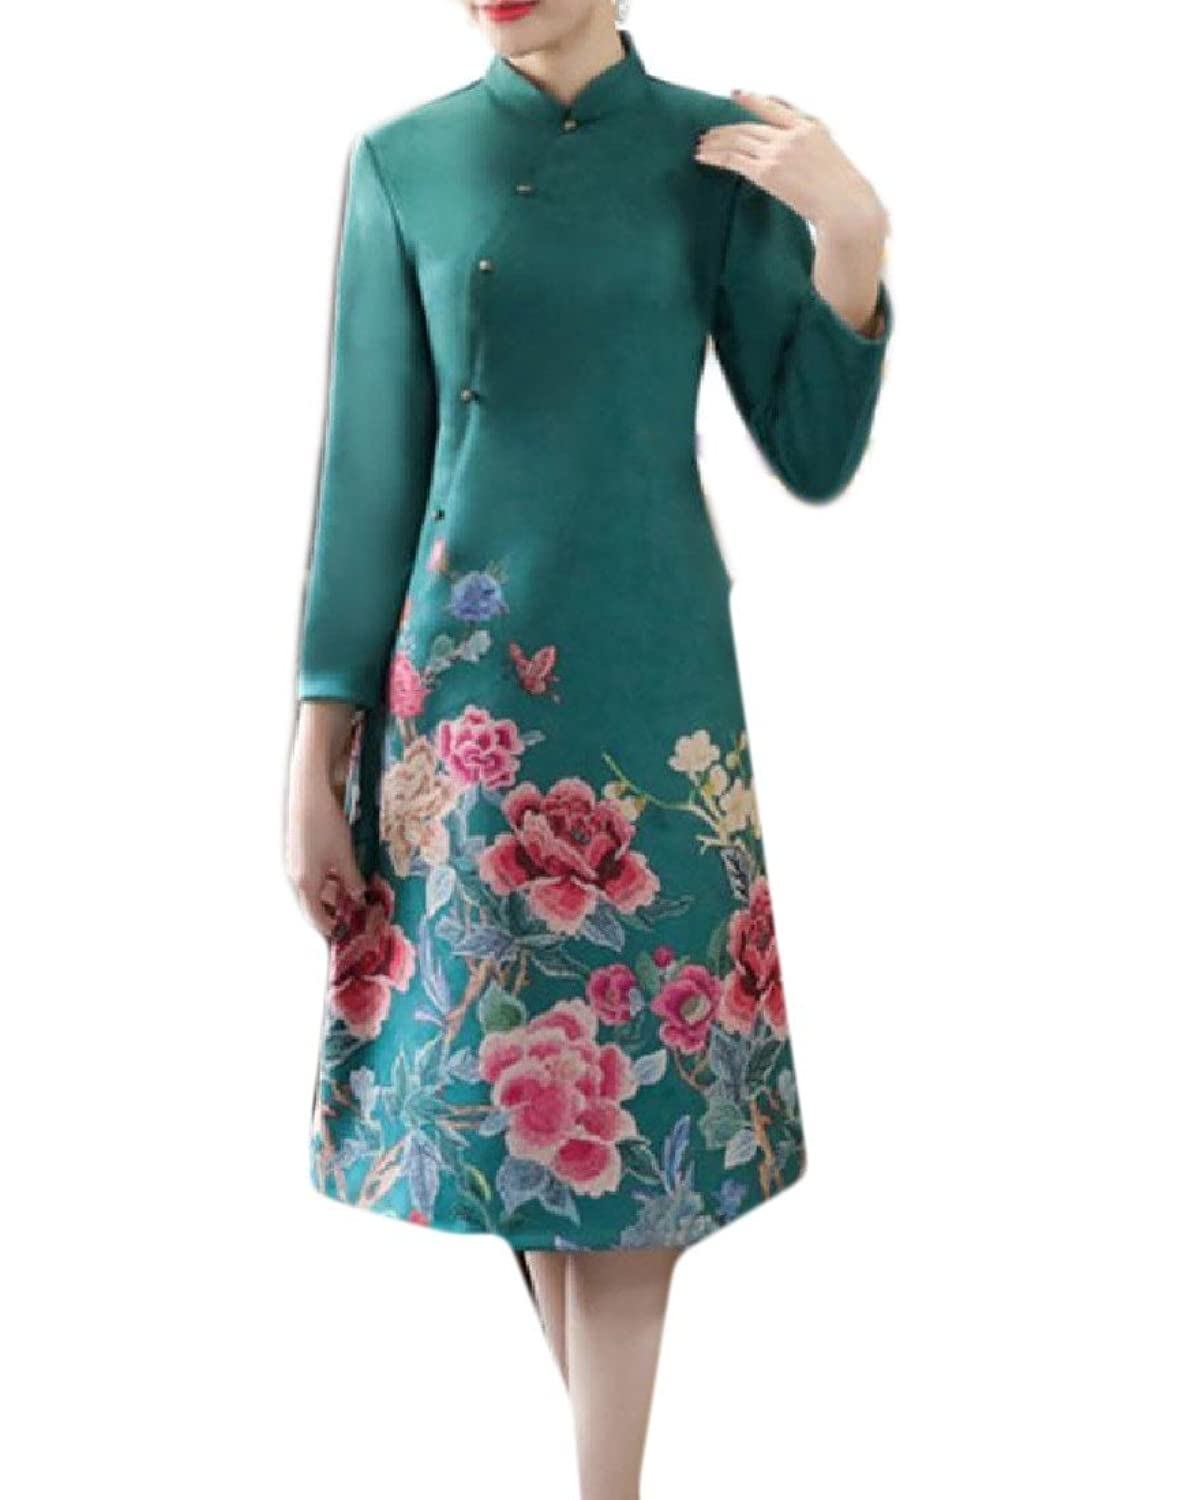 XiaoTianXin-women clothes XTX Women's Simple Qipao Vogue Suede Slim Fitted Embroidered Long Party Dress